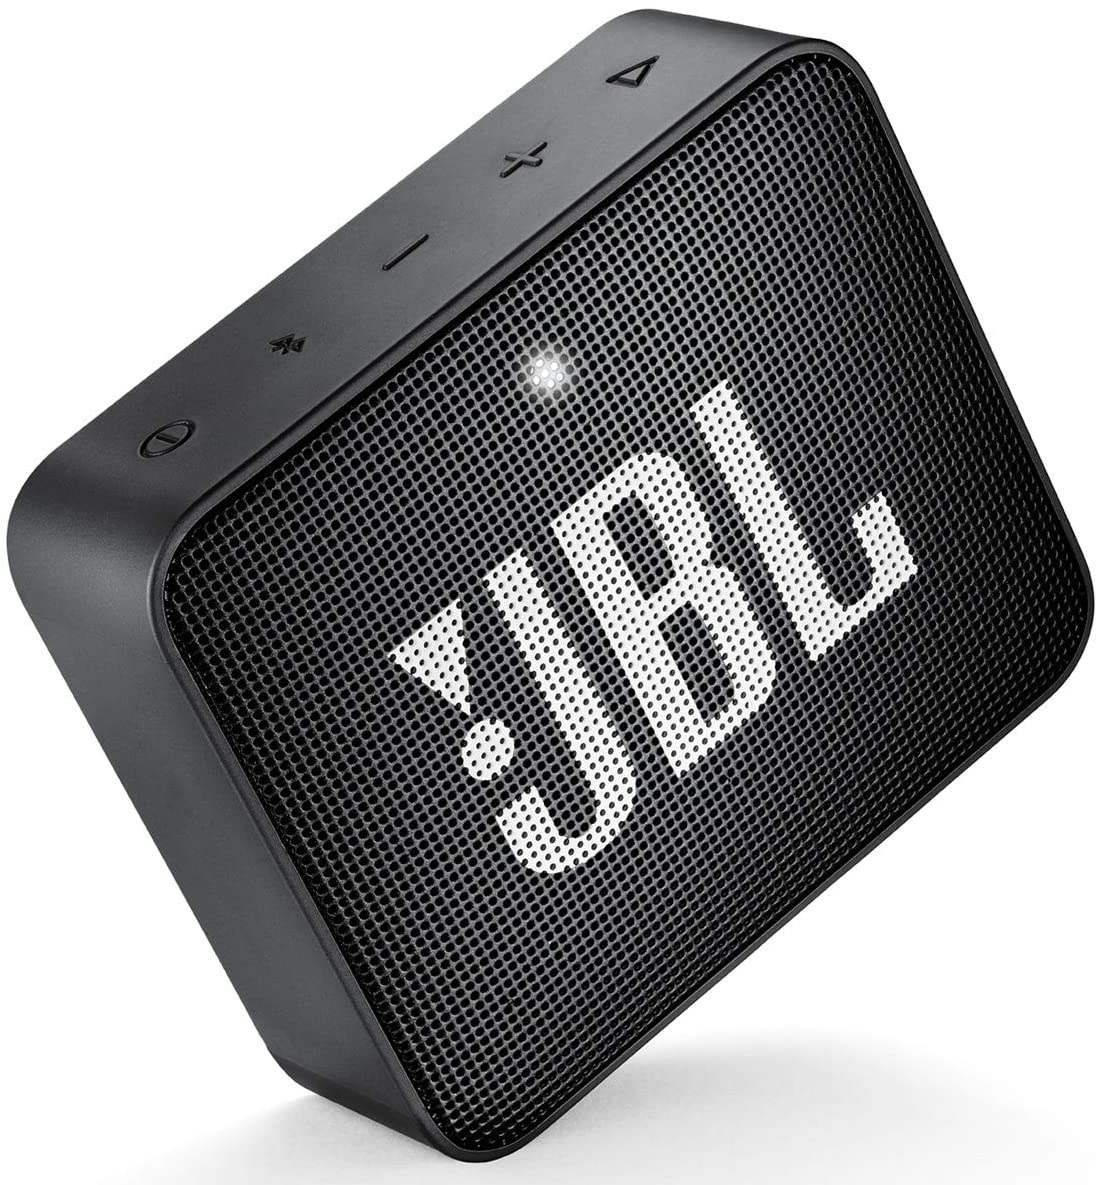 Square-shaped speaker with JBL on it